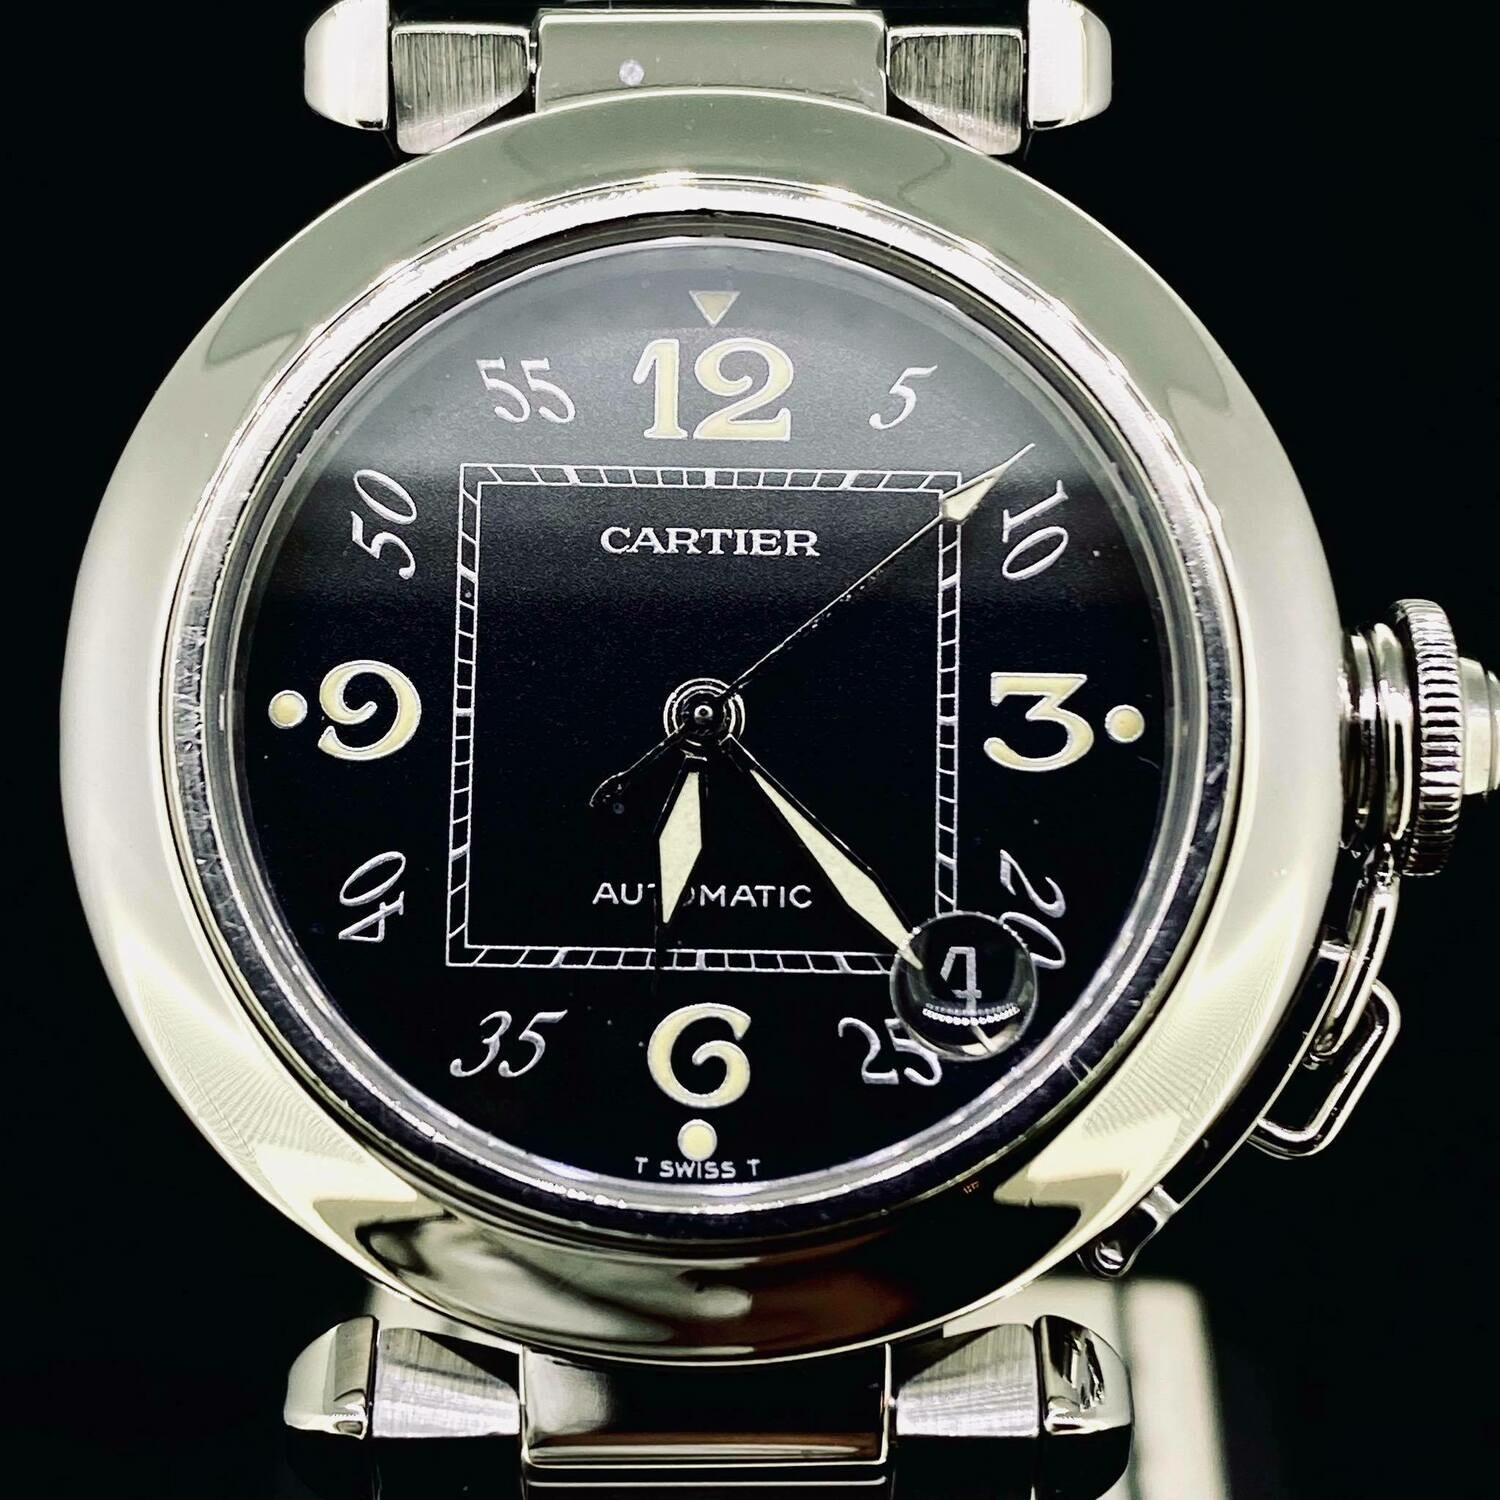 Cartier Pasha C 35MM Steel Black Dial Automatic Watch B&P2005 Very Good Condition